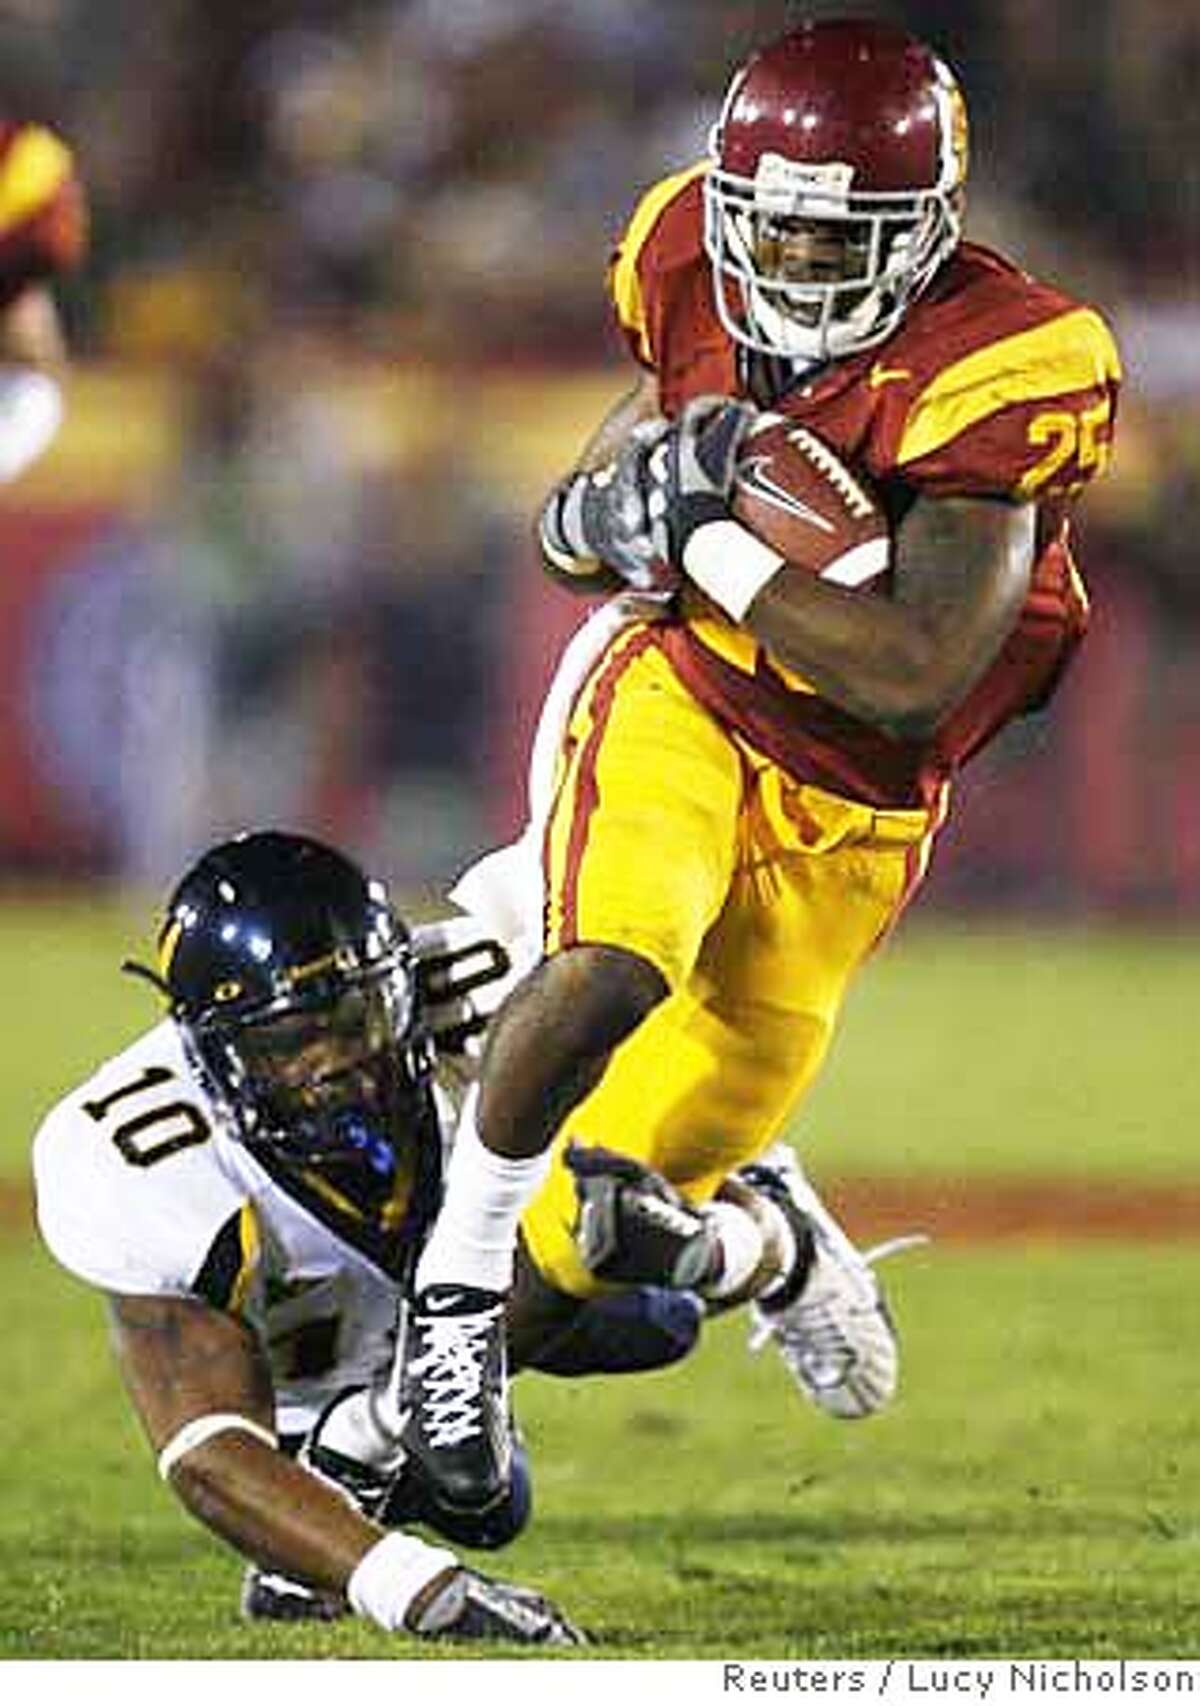 USC's C.J. Gable (R) is tackled by California's Desmond Bishop as he runs for a gain during the first quarter of their NCAA football game in Los Angeles November 18, 2006. REUTERS/Lucy Nicholson (UNITED STATES)